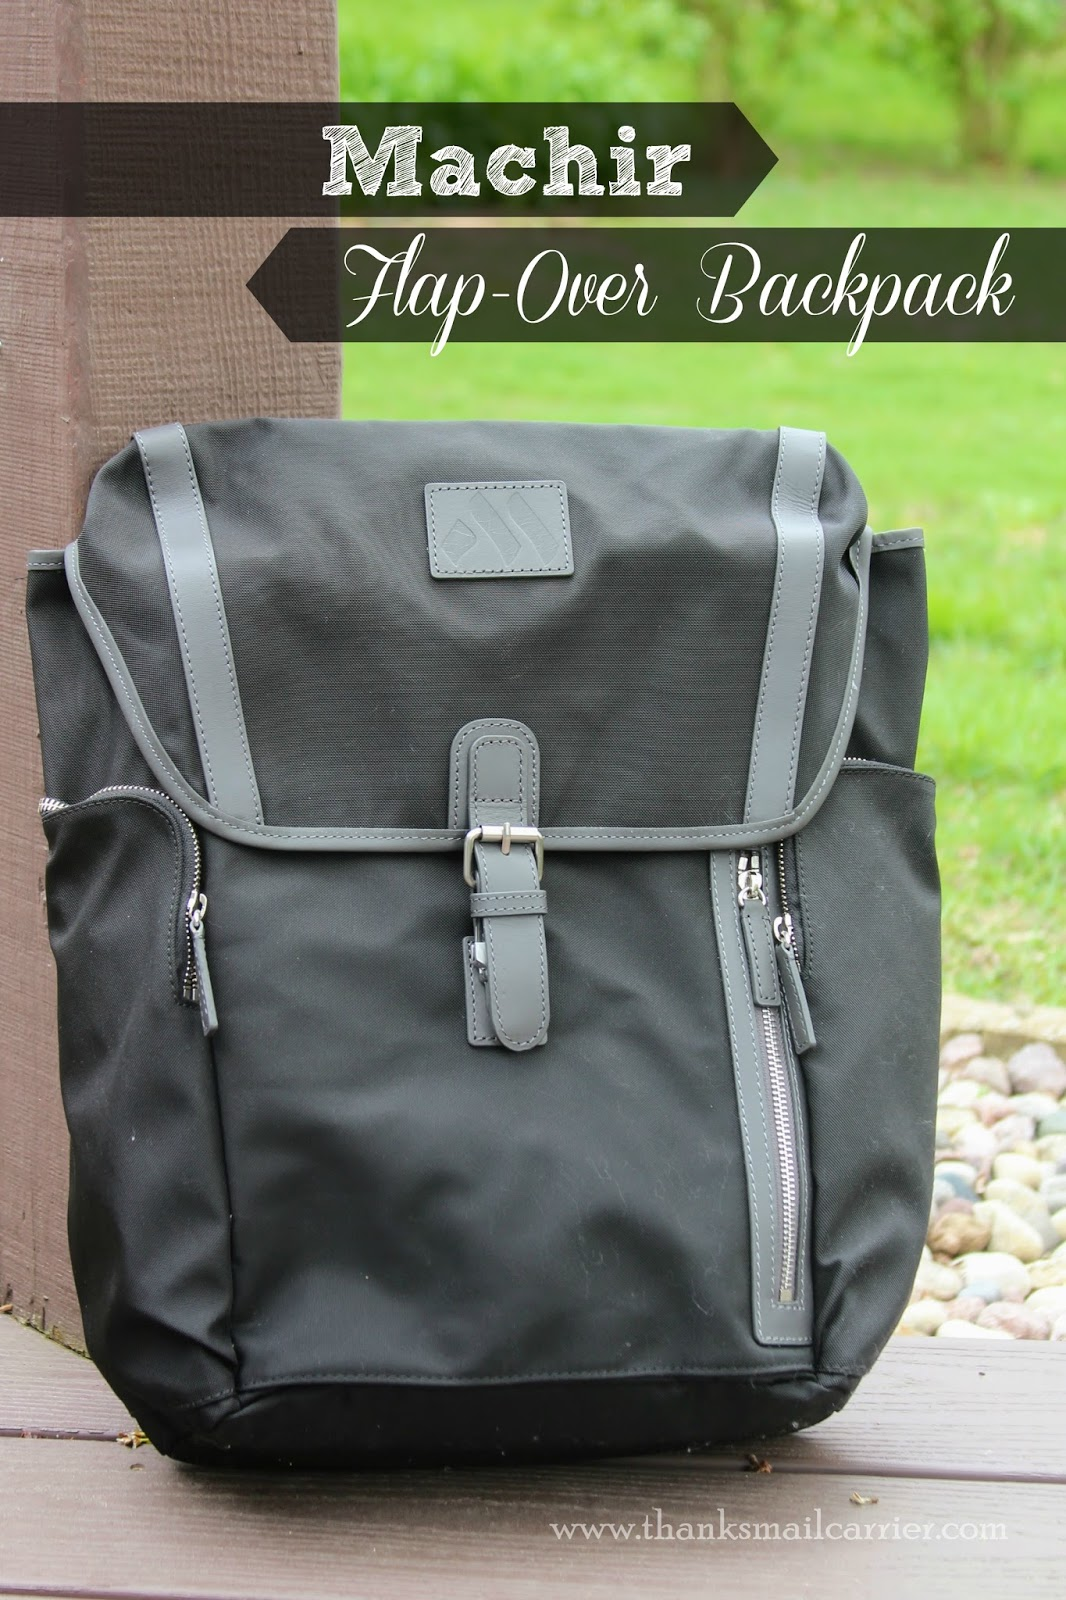 Machir Flap-Over Backpack